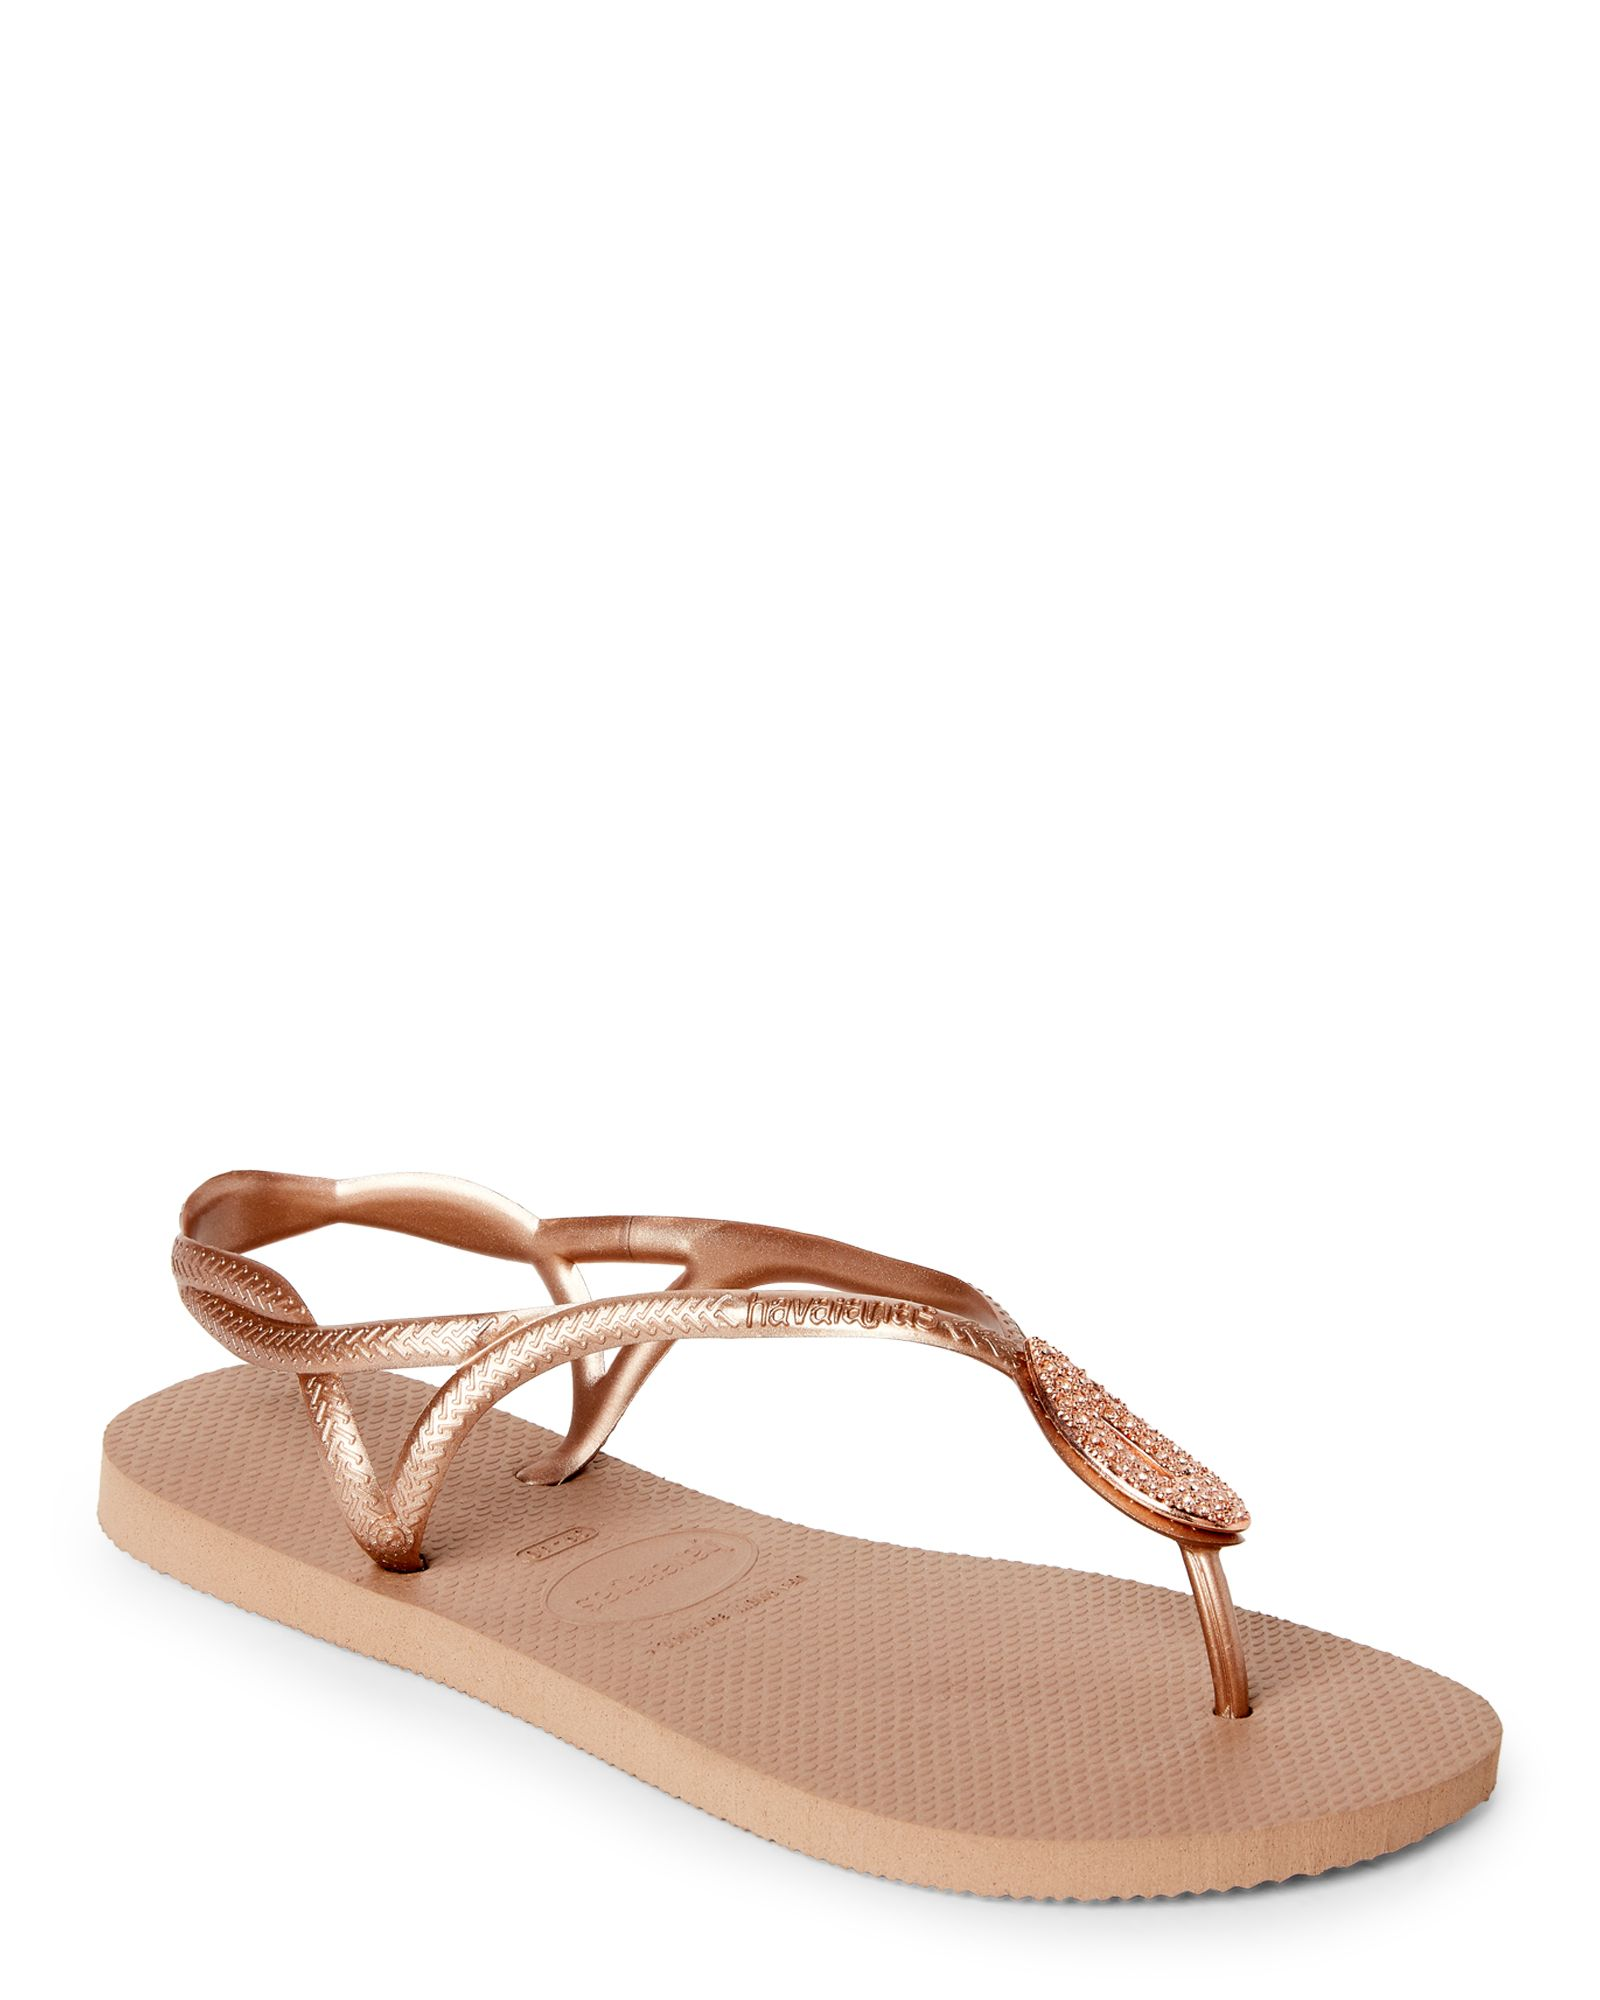 987c767b5109 Havaianas Rose Gold Luna Special Thong Sandals